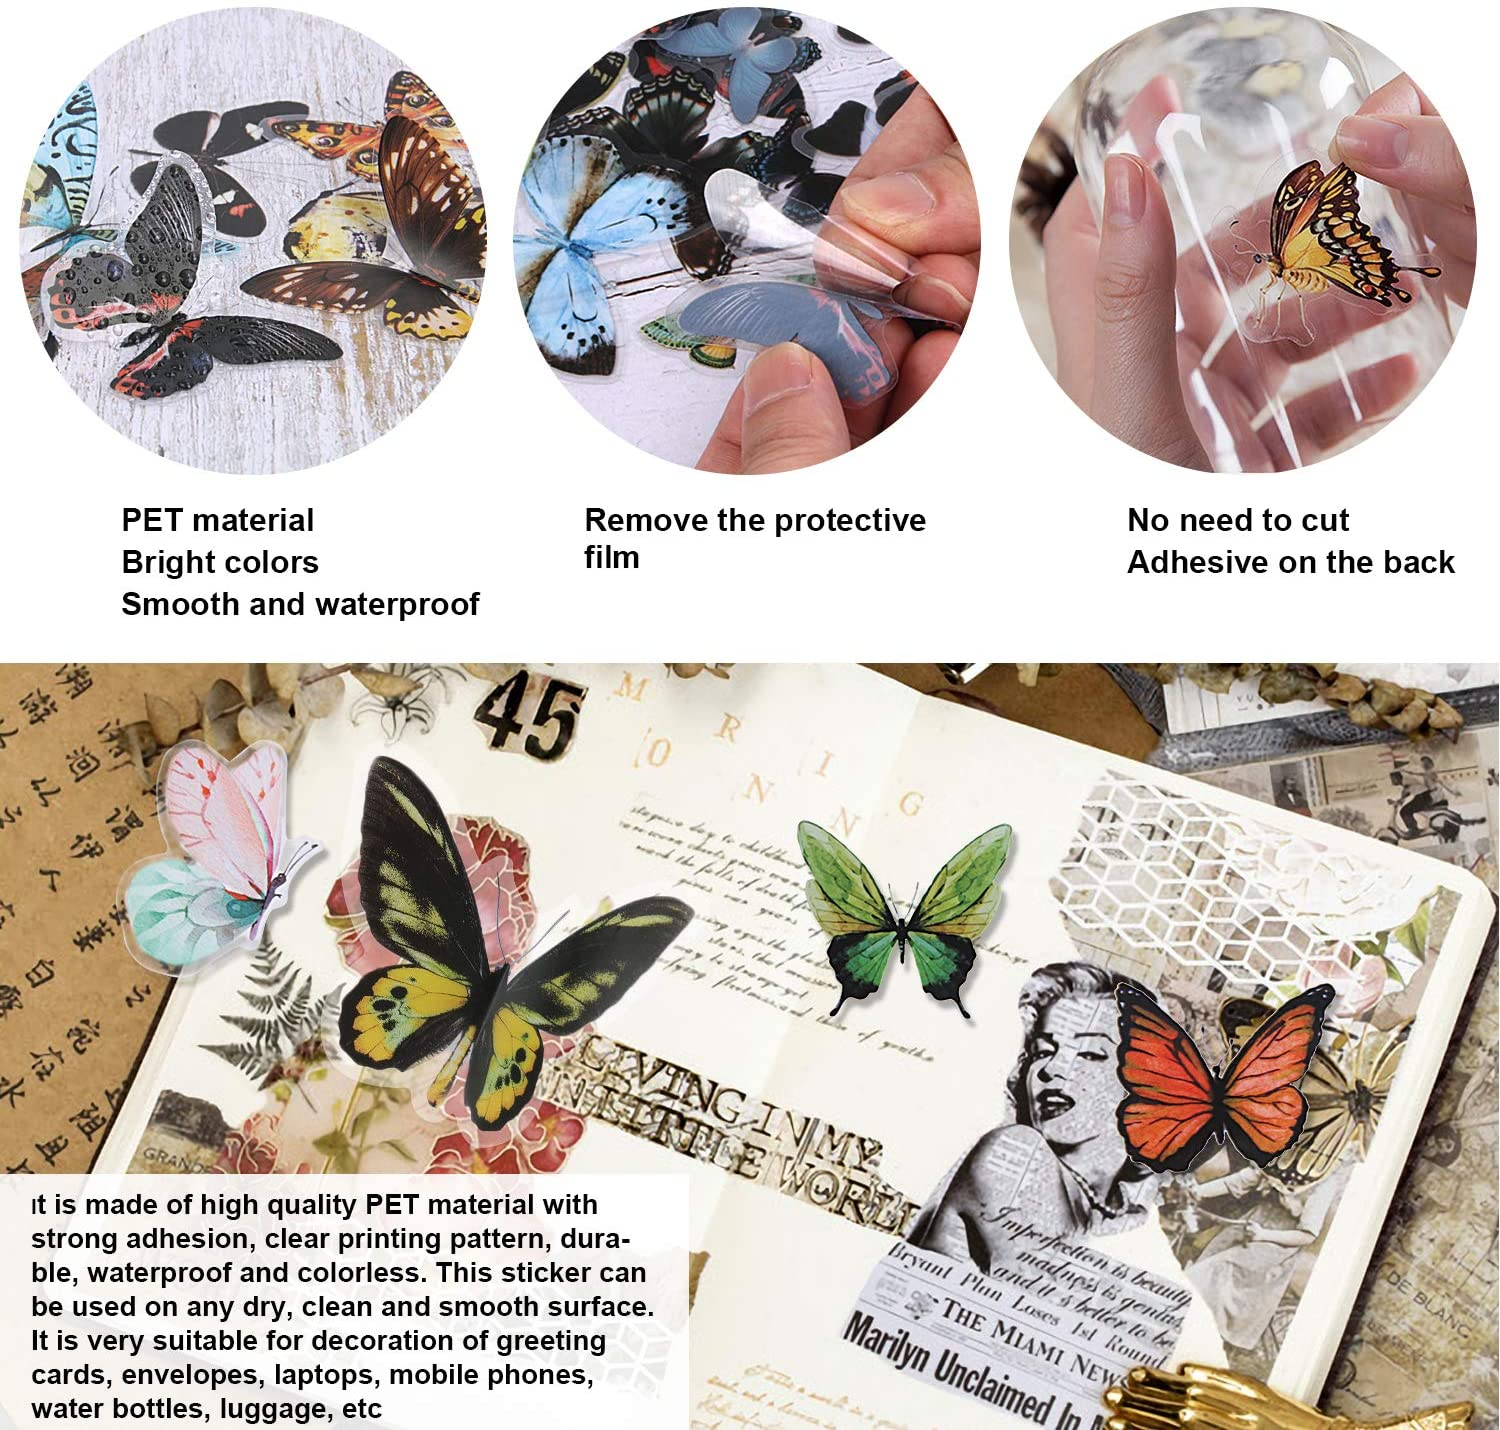 160 Vintage Butterfly Scrapbook Stickers Set DIY Decoration Butterfly Stickers Butterfly Resin for Envelope Scrapbook Luggage Windows Journals